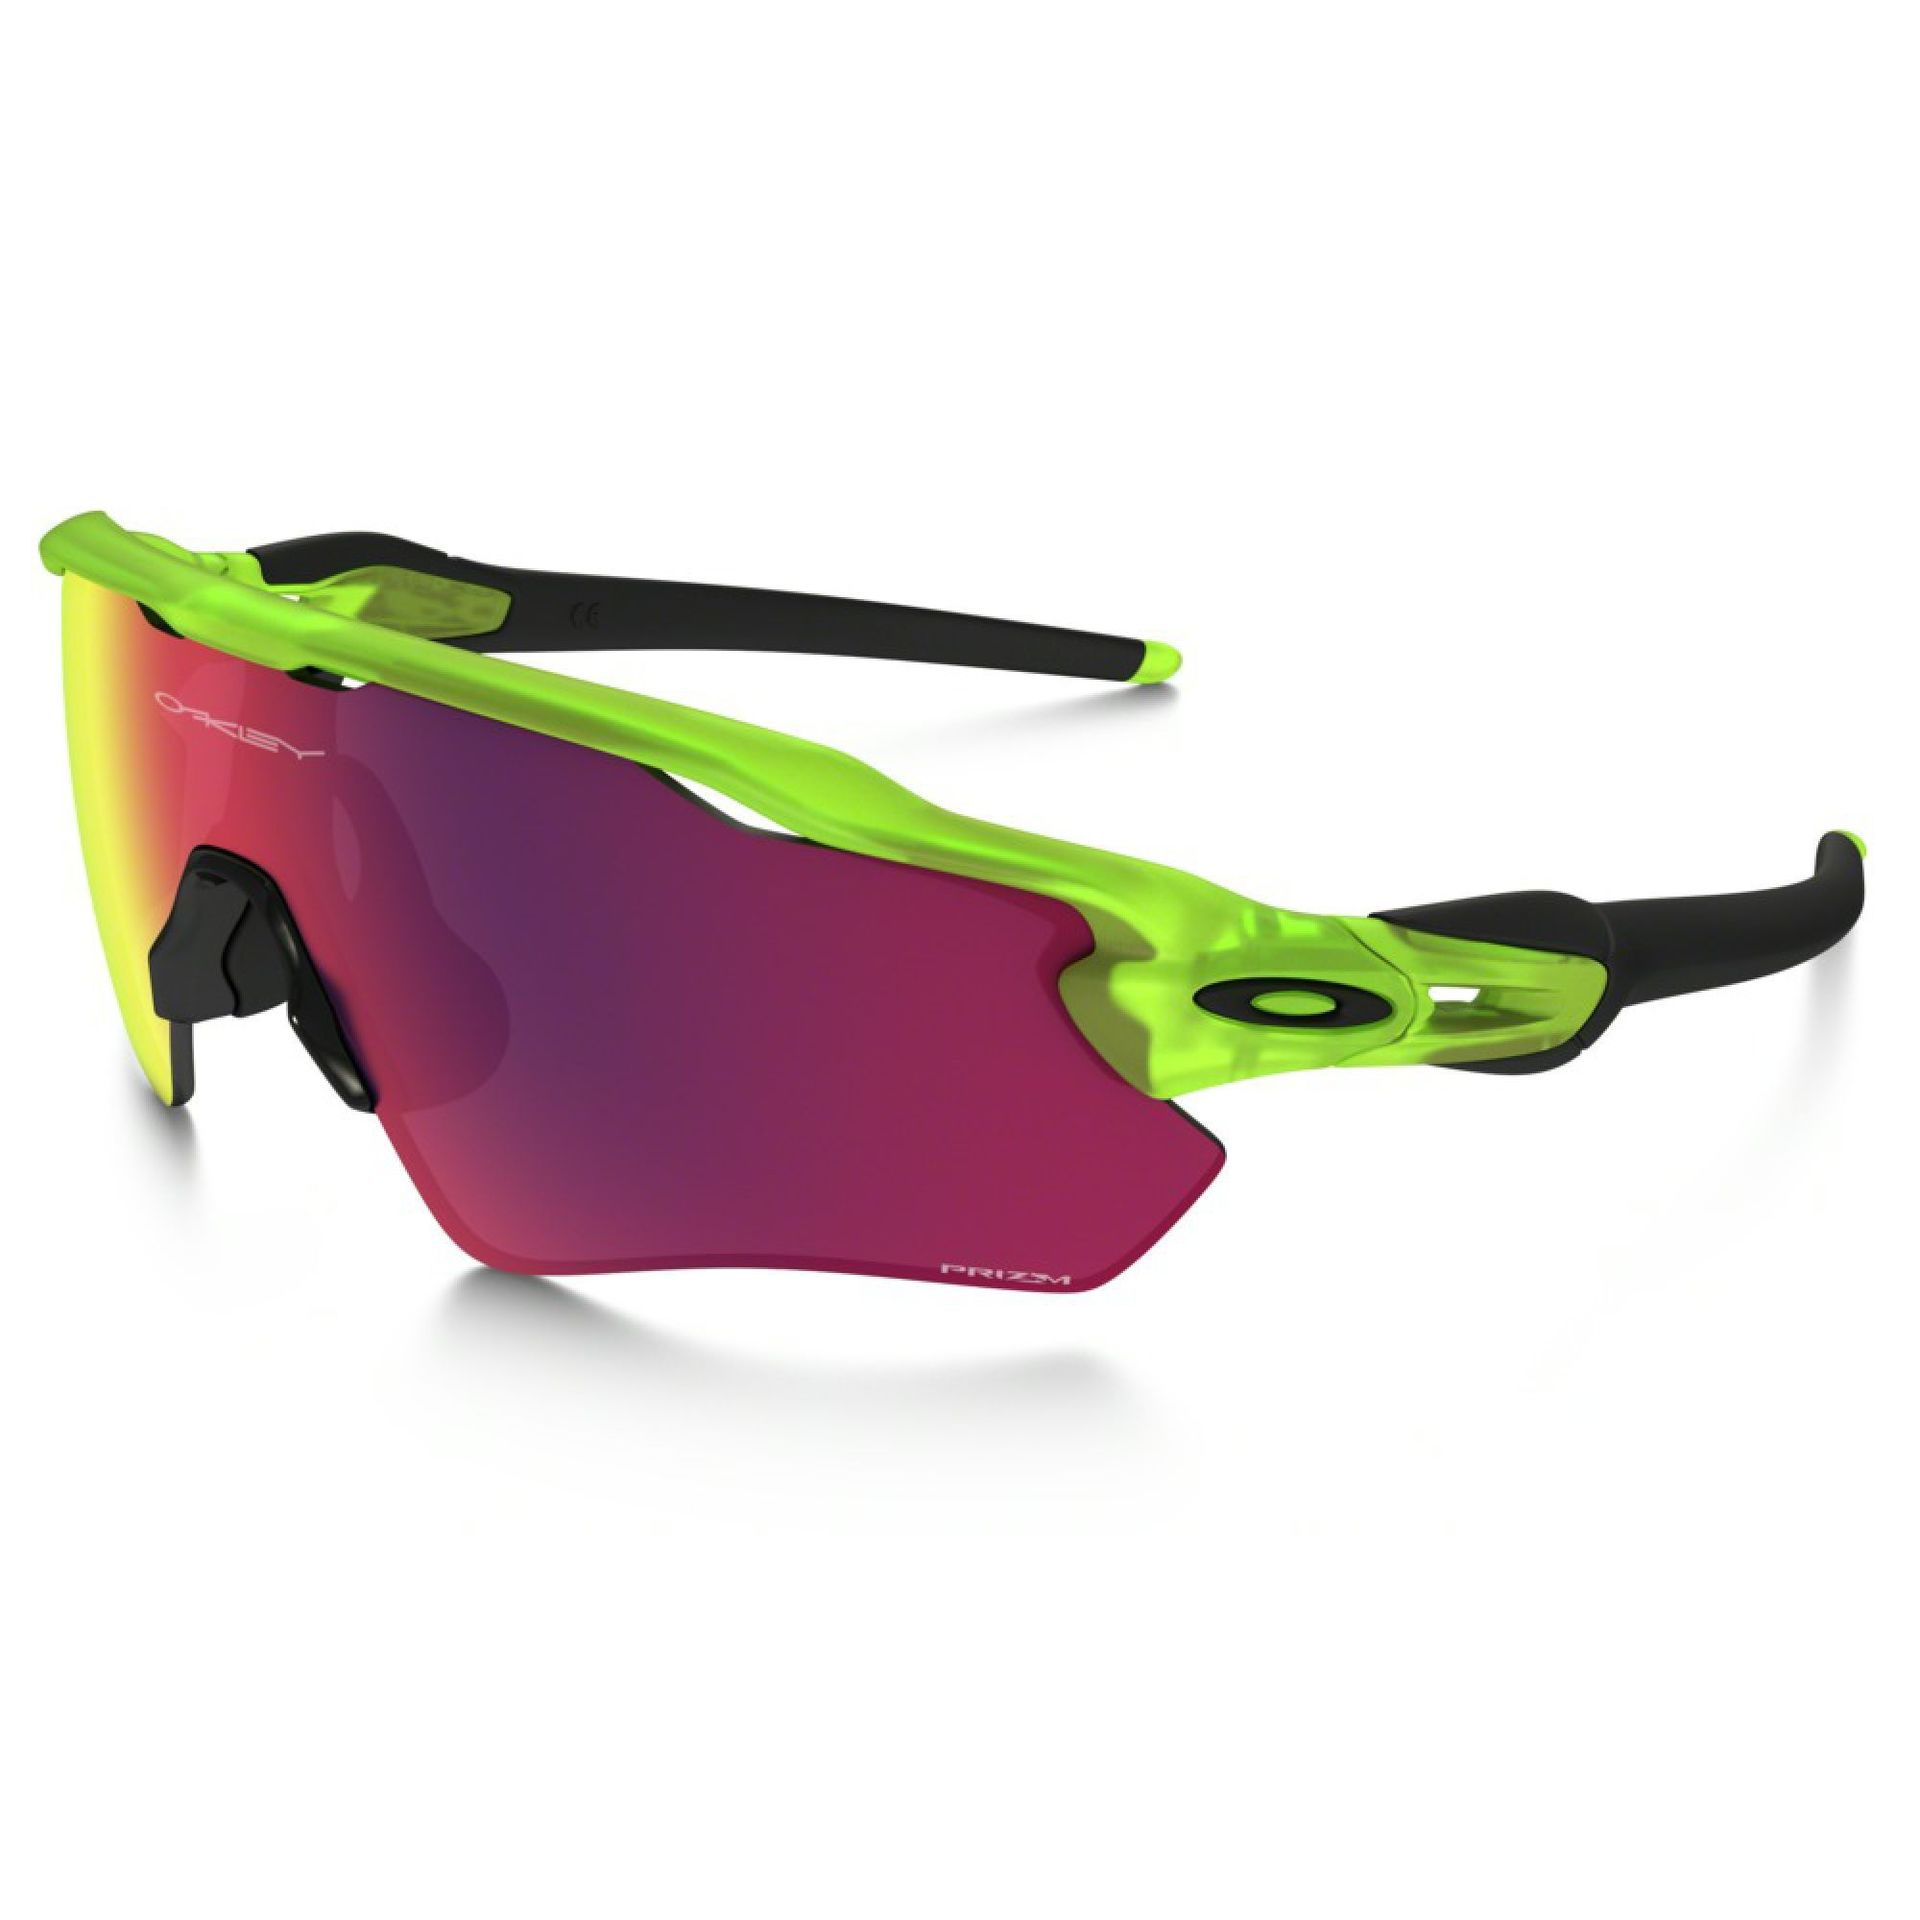 OKULARY OAKLEY RADAR EV PATH PRIZM ROAD URANIUM 1